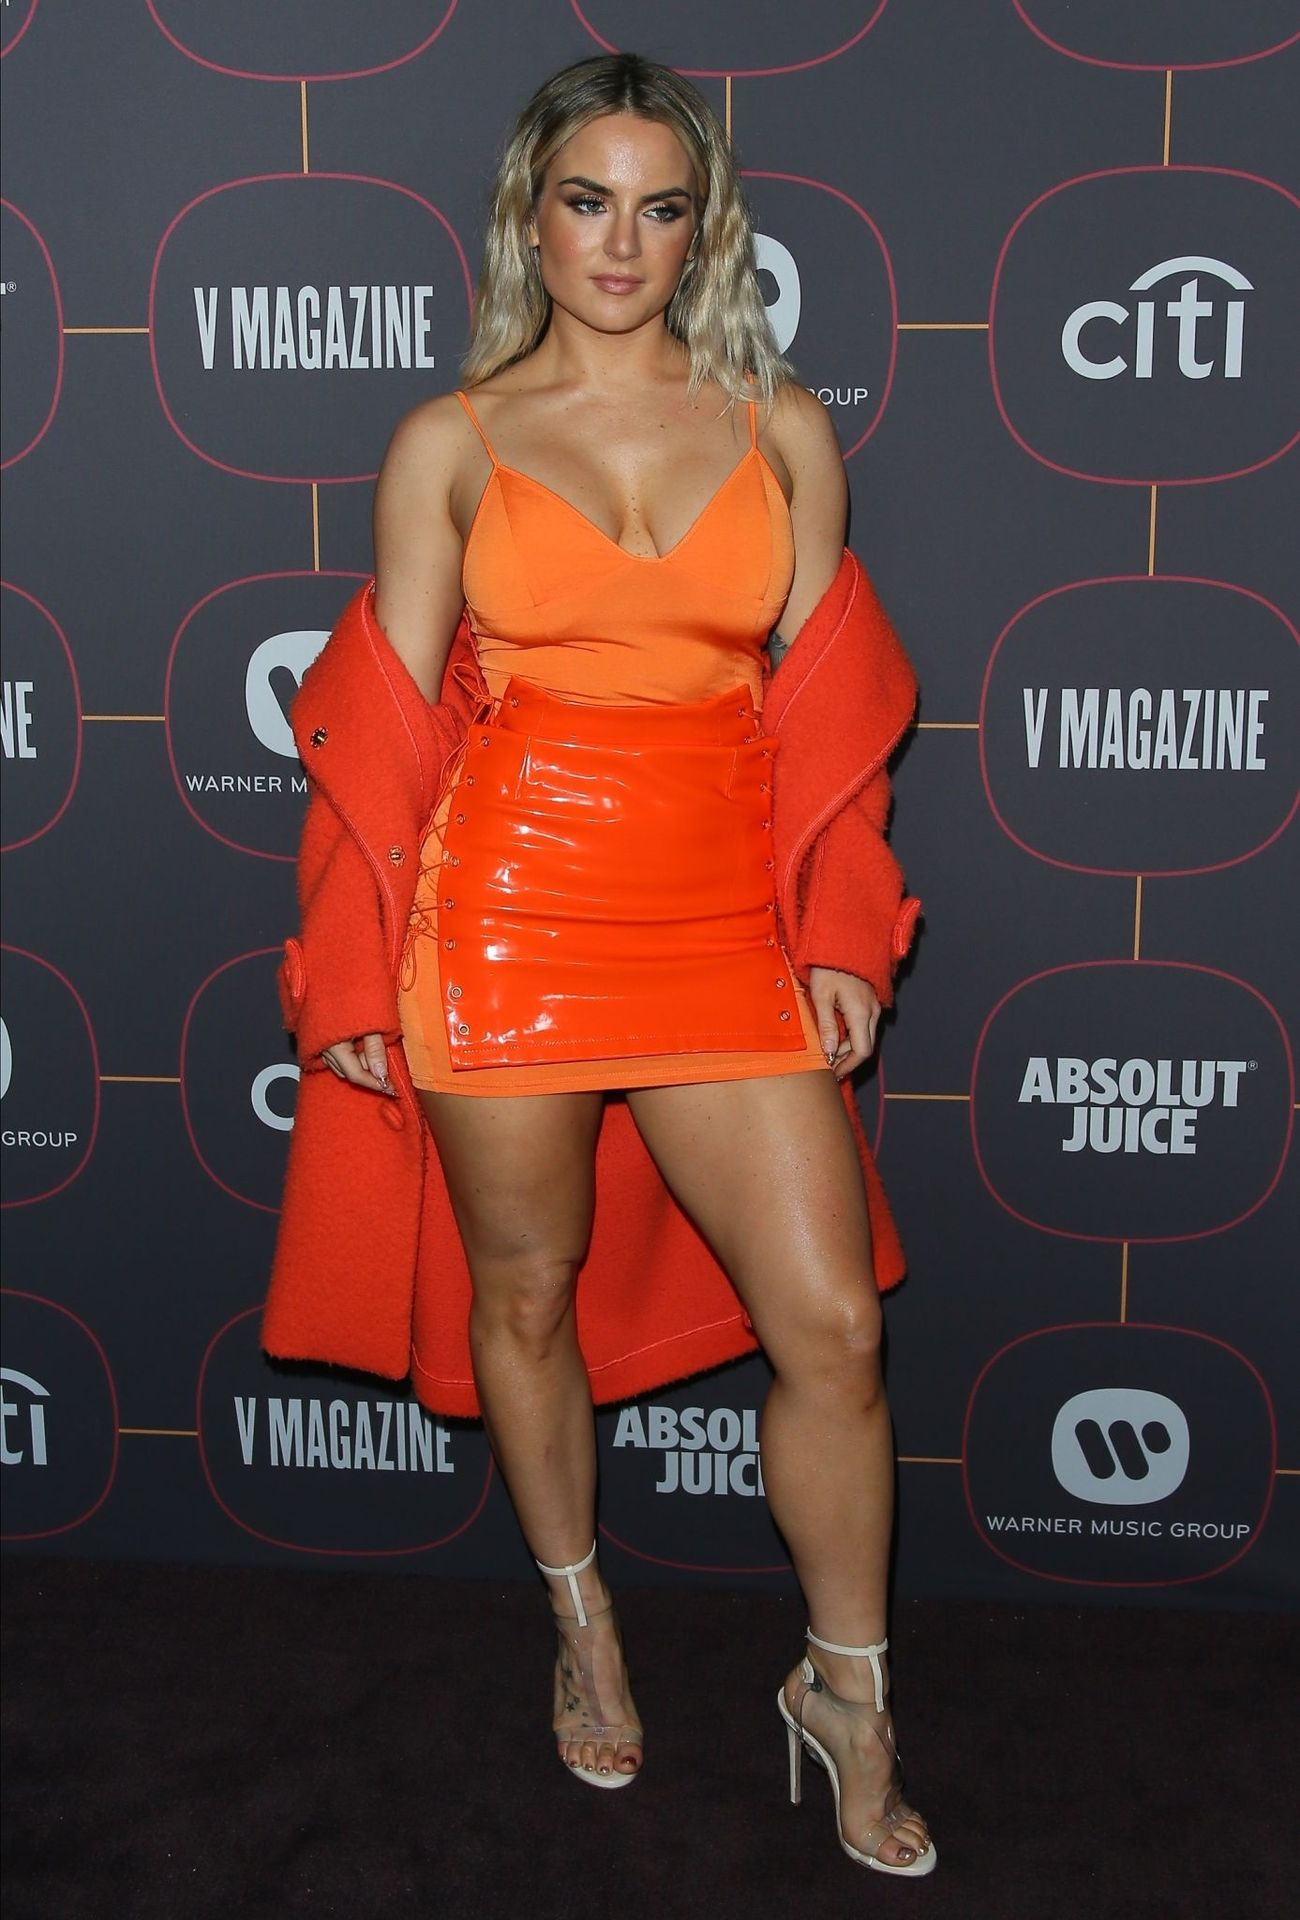 Jojo Shows Off Her Tits At The Warner Music Group Pre Grammy Party In Hollywood 0008